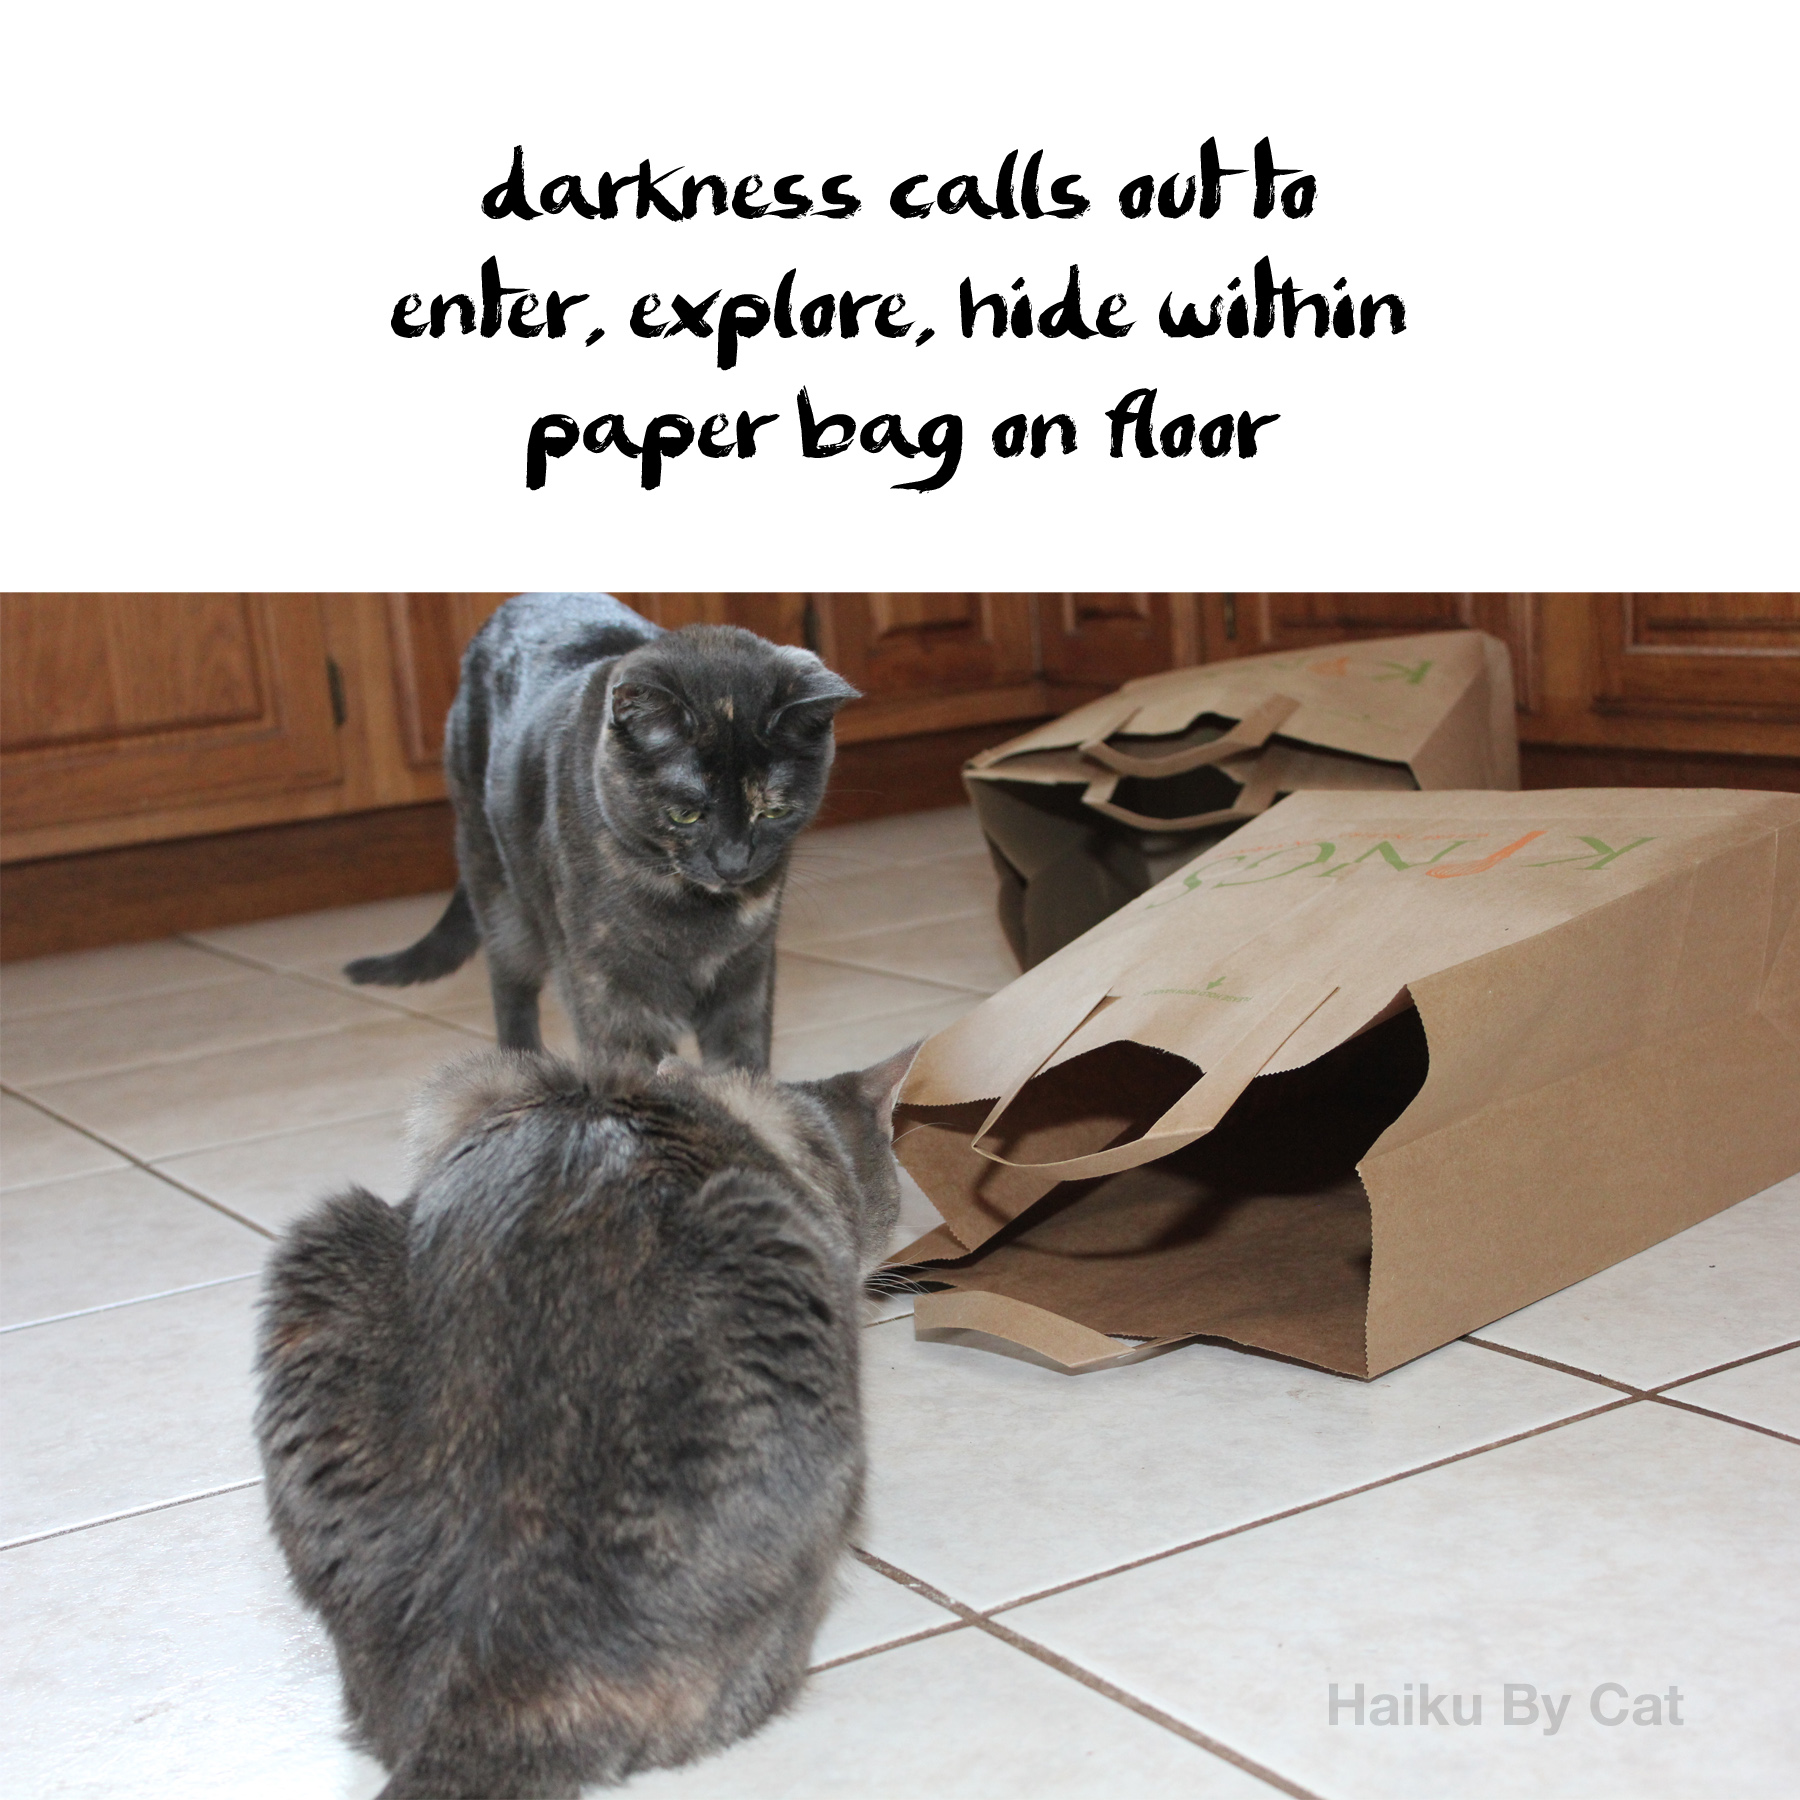 Haiku by Cat: darkness calls out to / enter, explore, hide within / paper bag on floor